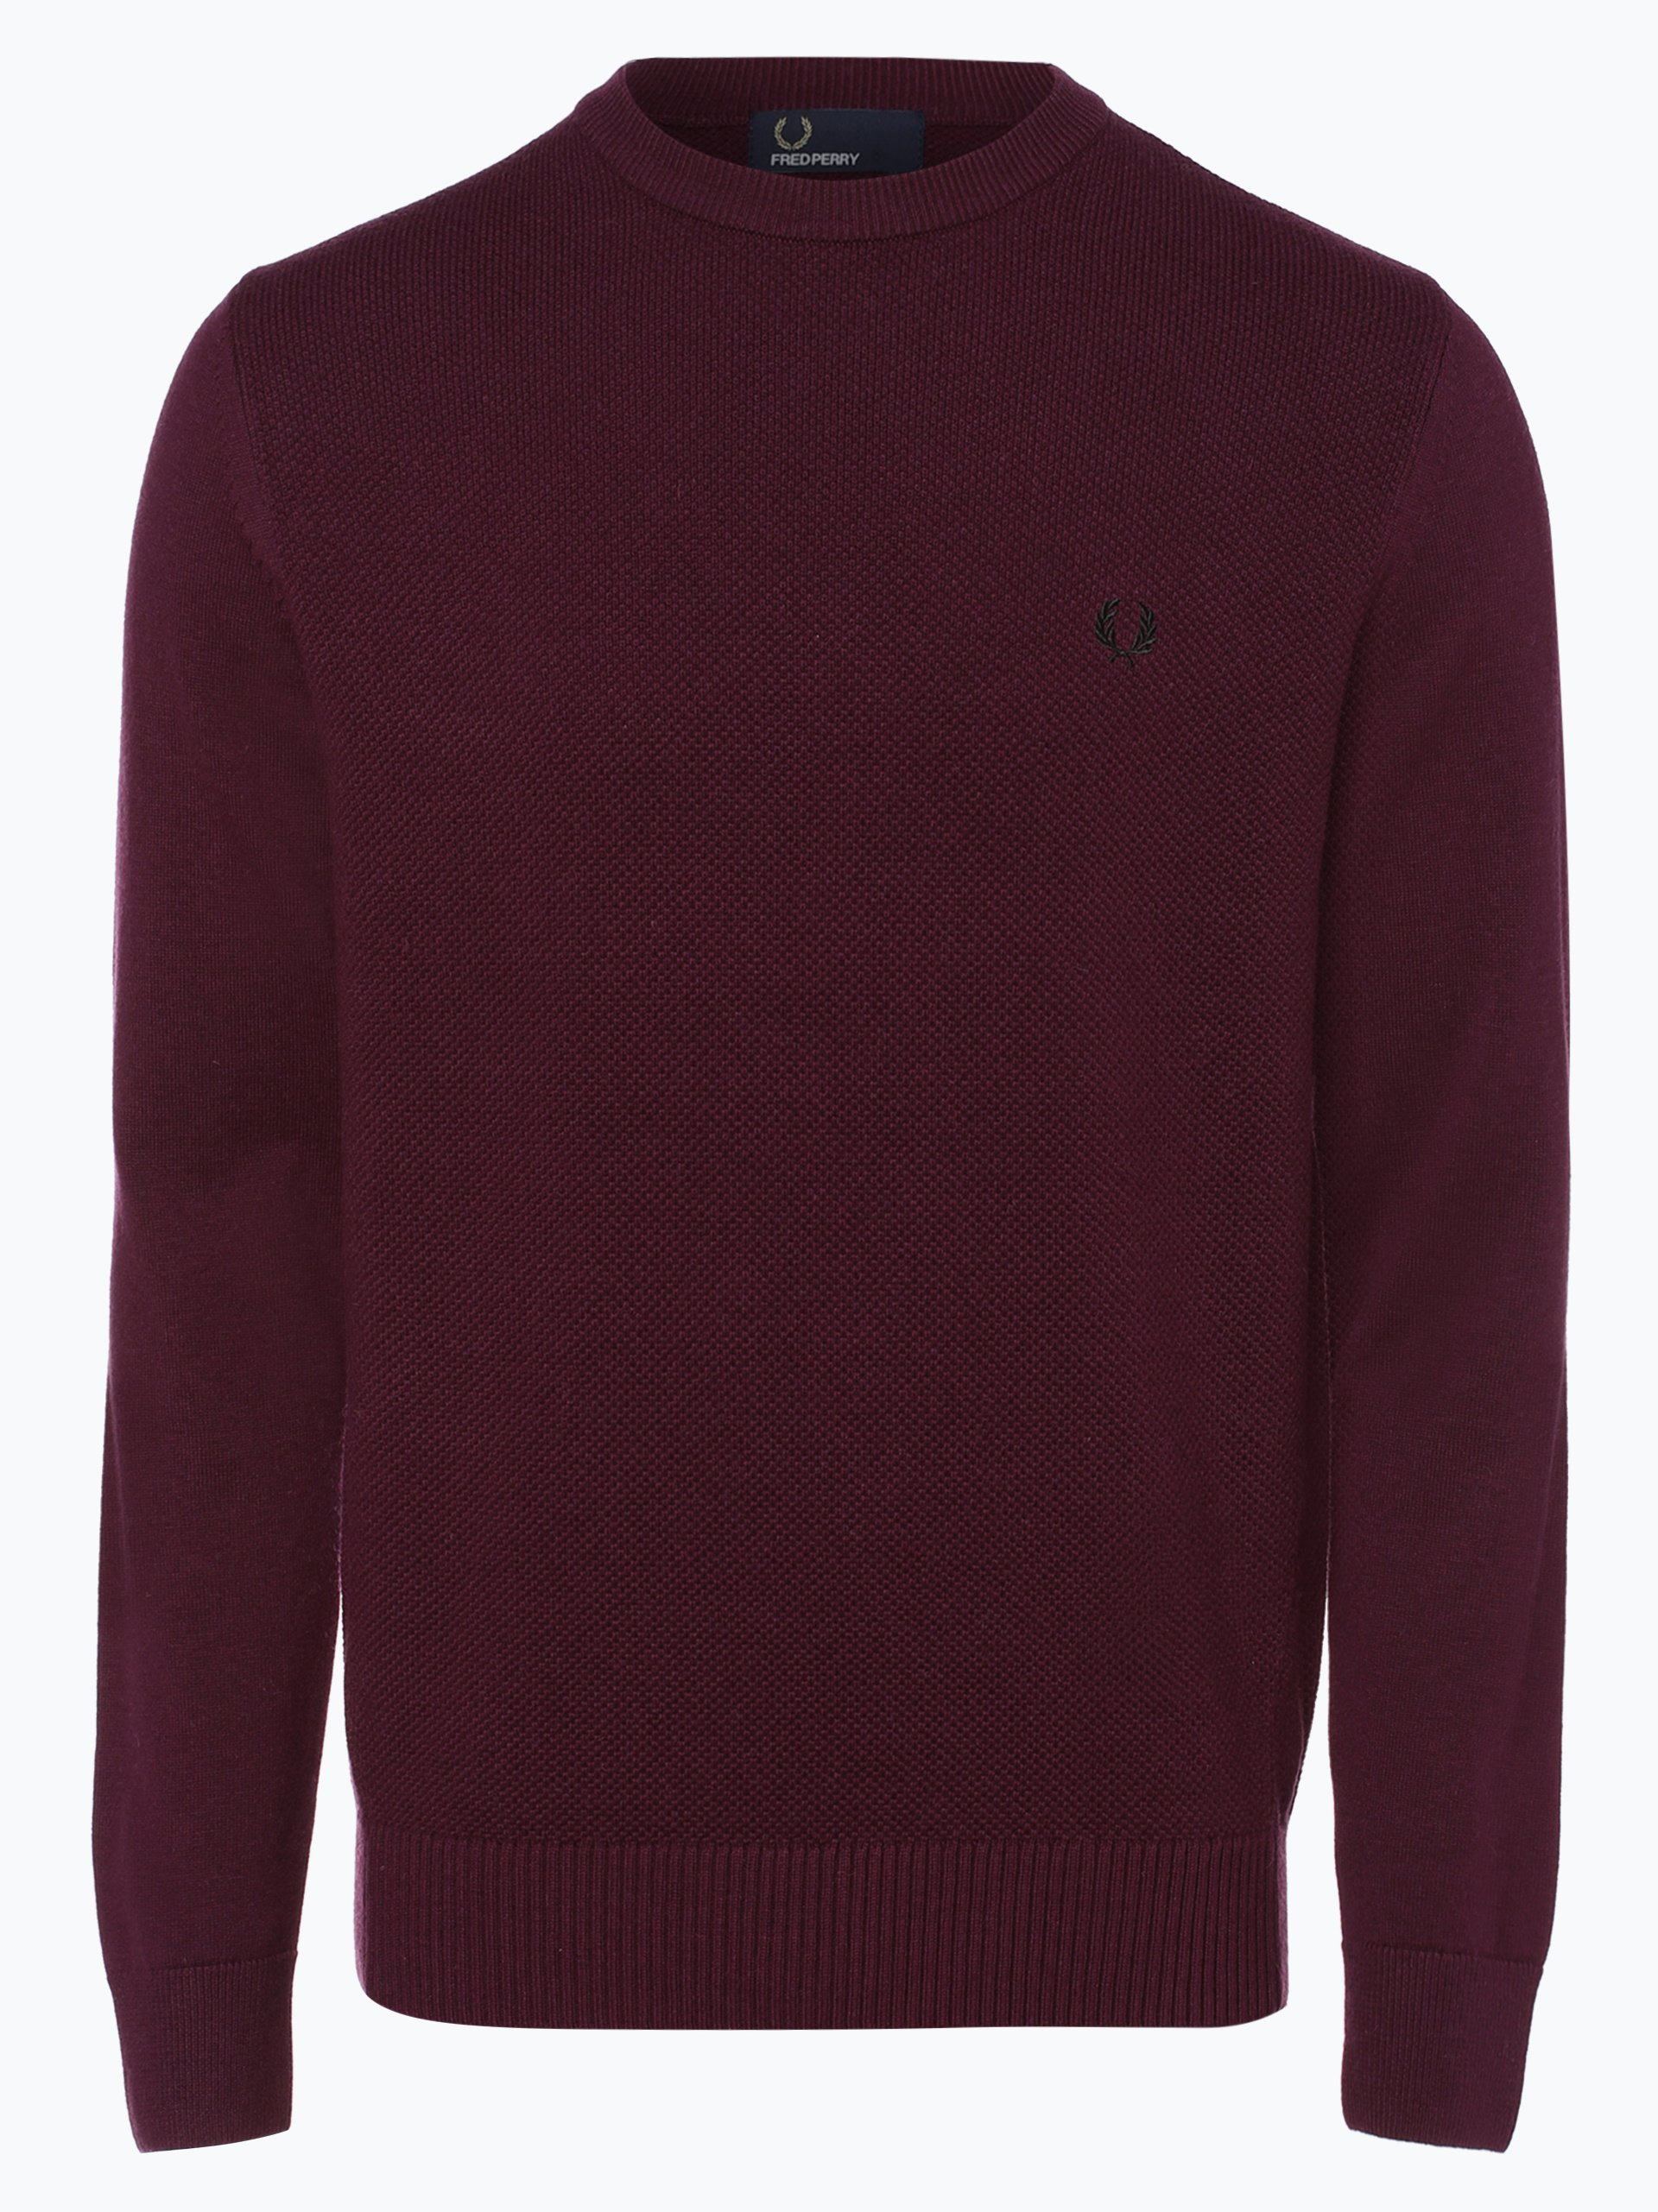 fred perry herren pullover aubergine uni online kaufen. Black Bedroom Furniture Sets. Home Design Ideas